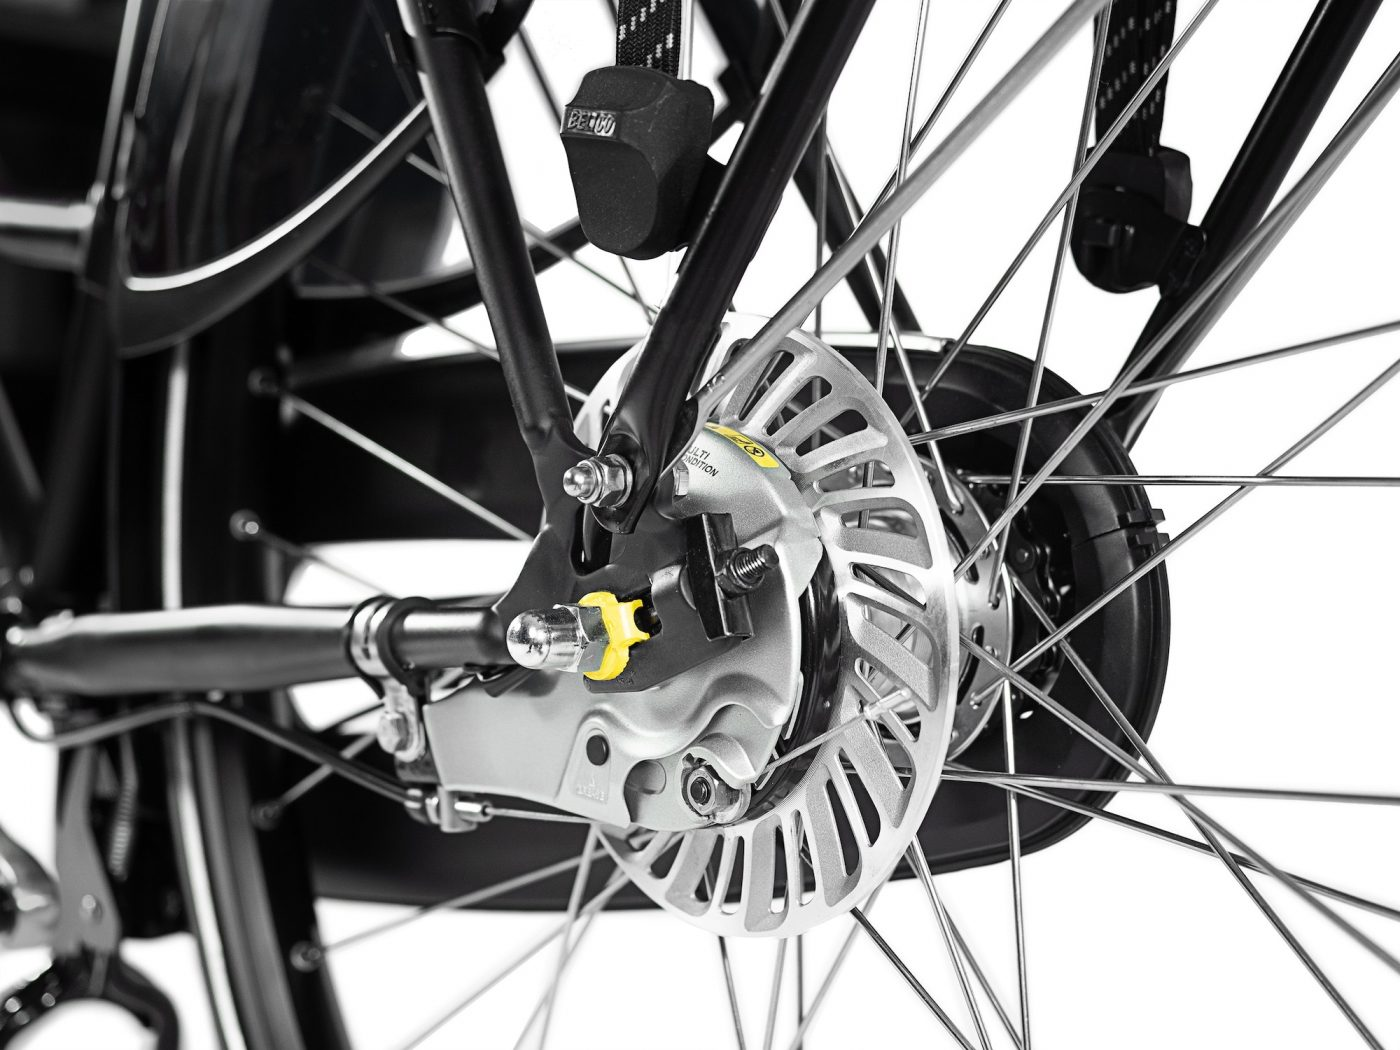 All WorkCycles bikes have fully enclosed hub gears, mostly from Shimano: foolproof shifting, nearly maintenance free and out of harm's way. You can even shift while stopped, a very handy feature when riding for transportation.